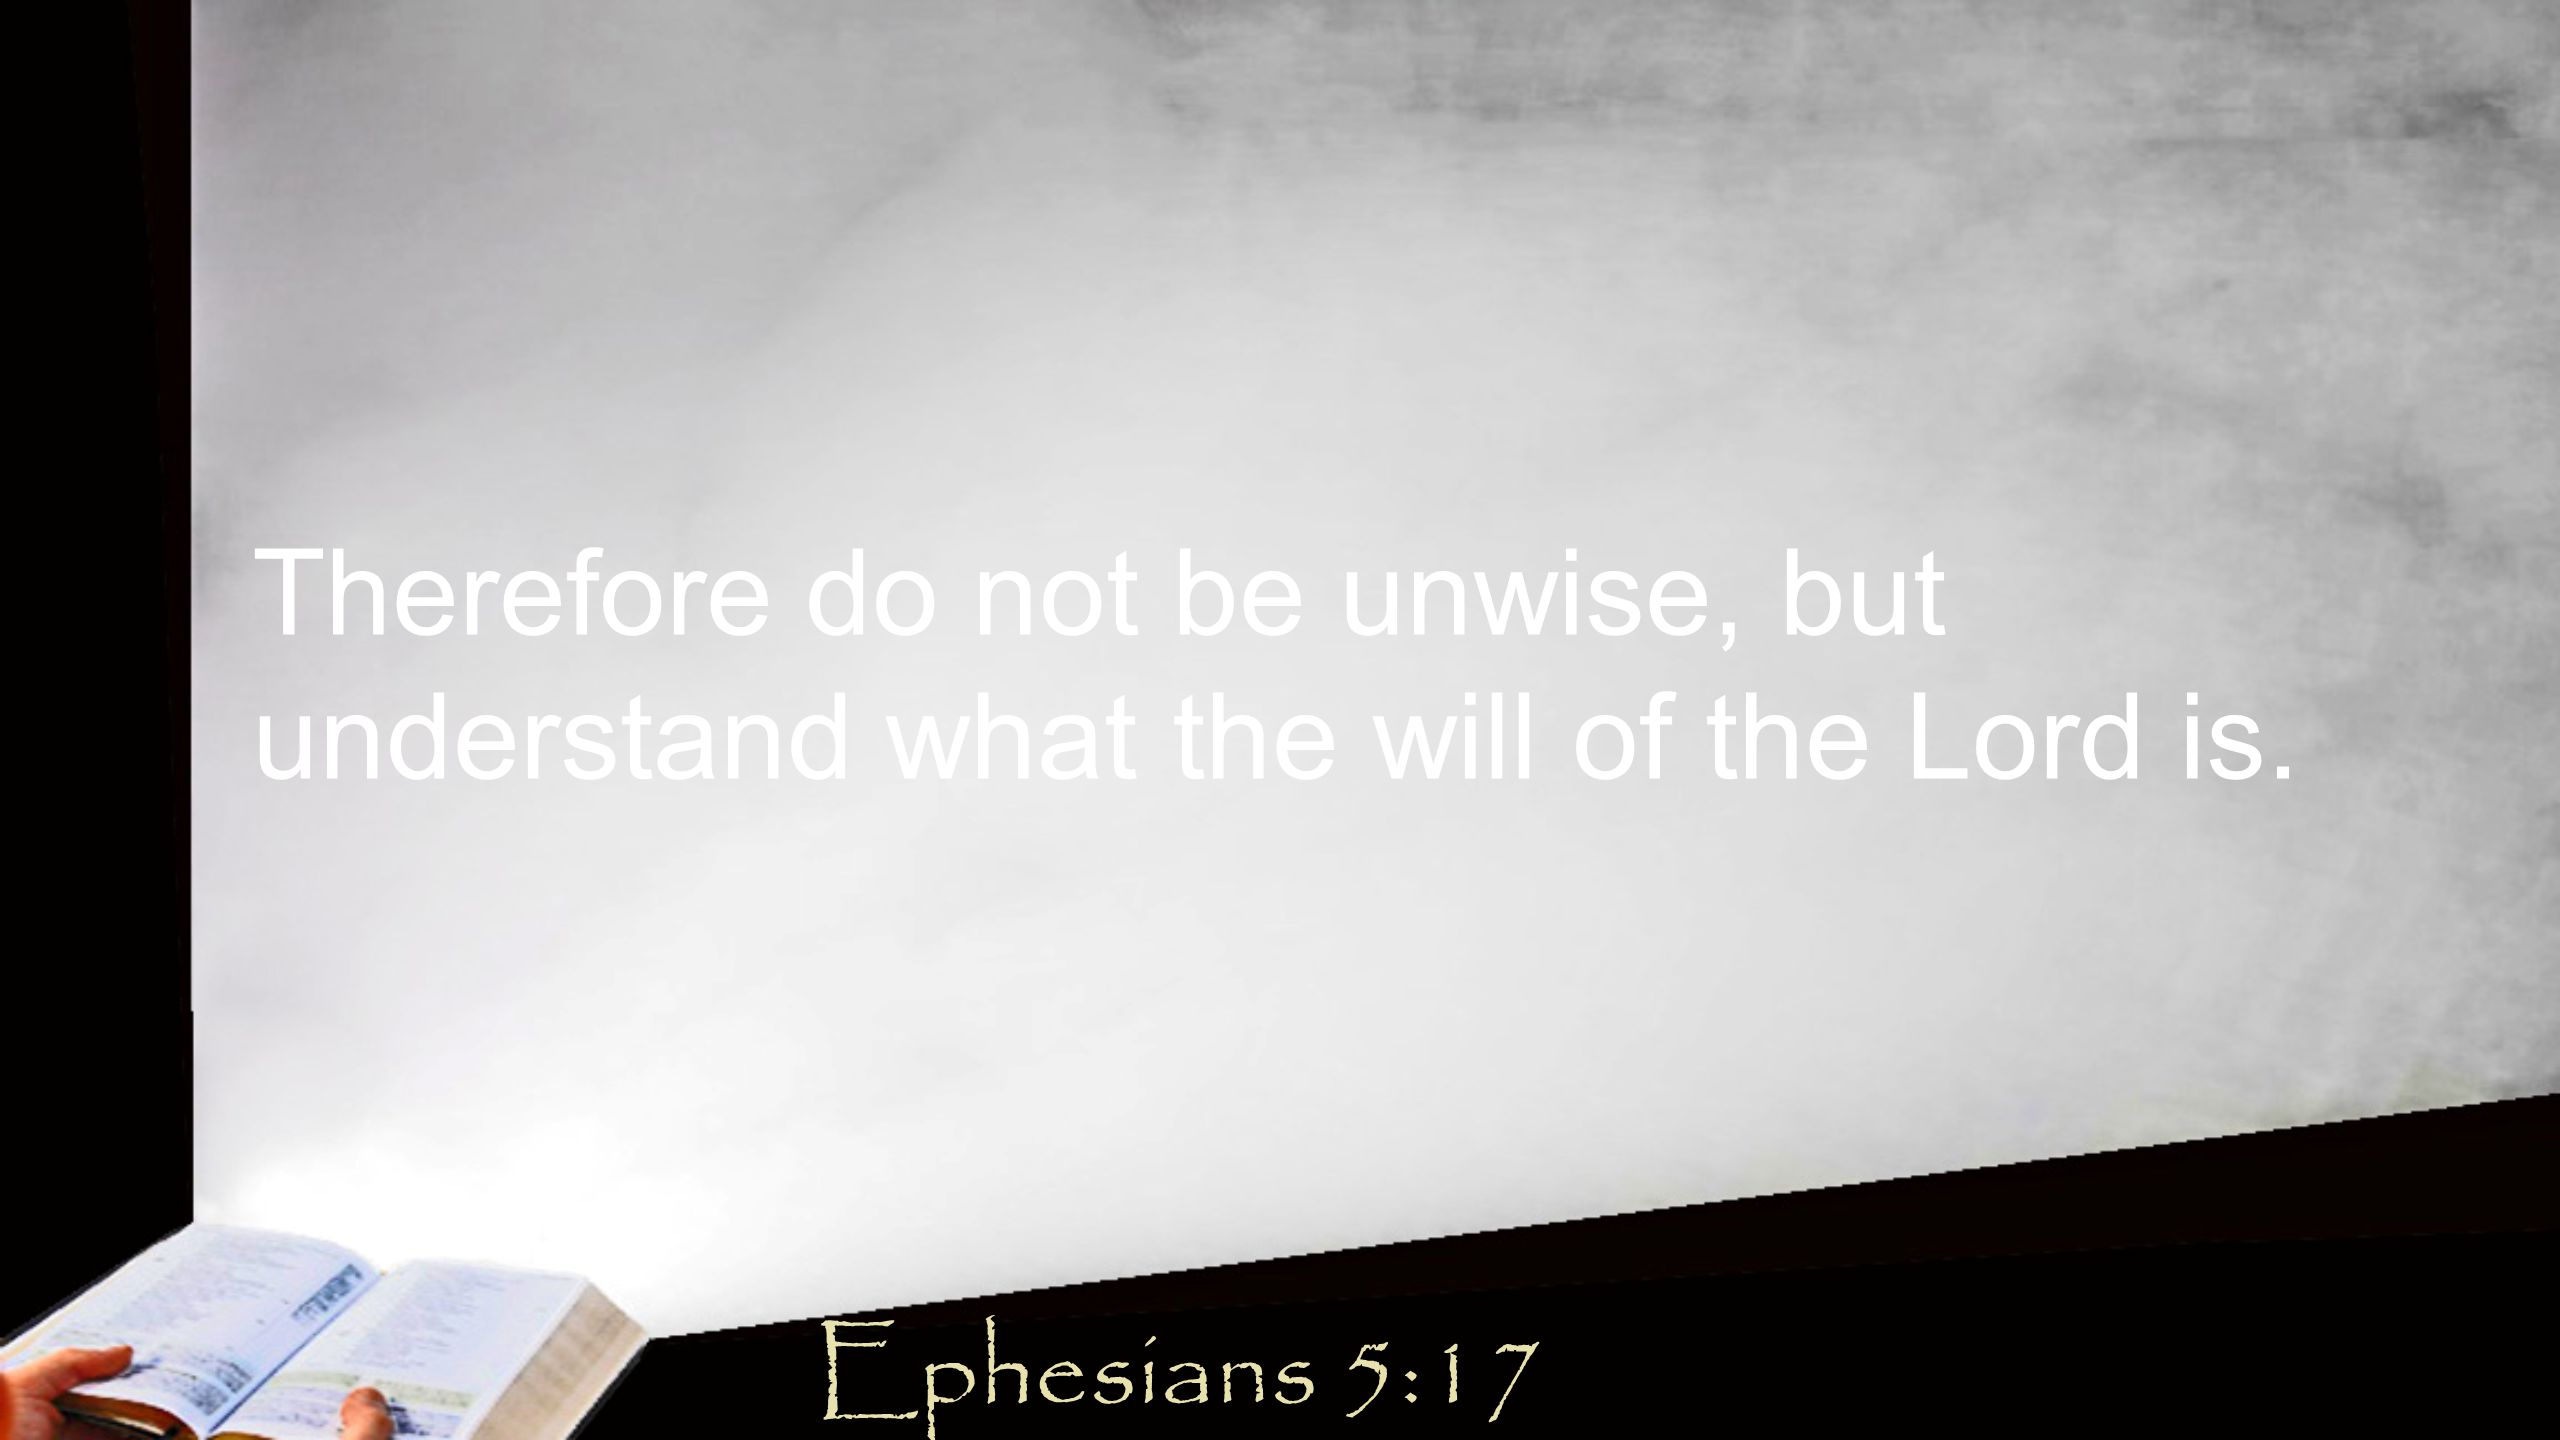 Therefore do not be unwise, but understand what the will of the Lord is. Ephesians 5:17